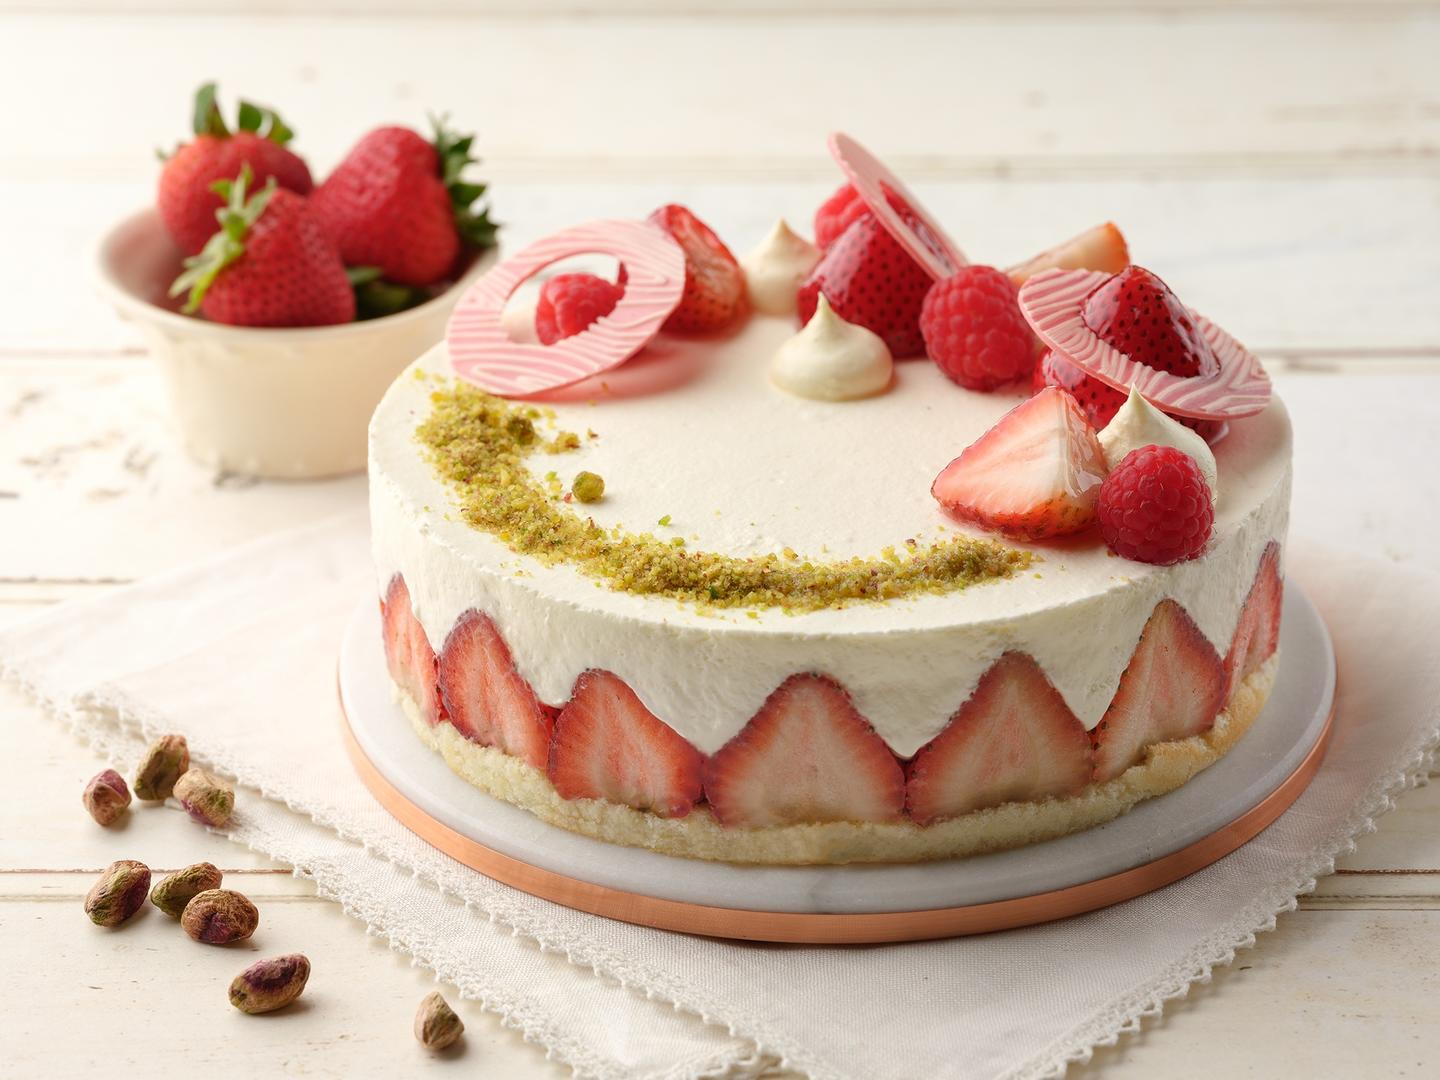 Enjoy Pan Pacific's Strawberry Pistachio Shortcake In The Comfort Of Your Home